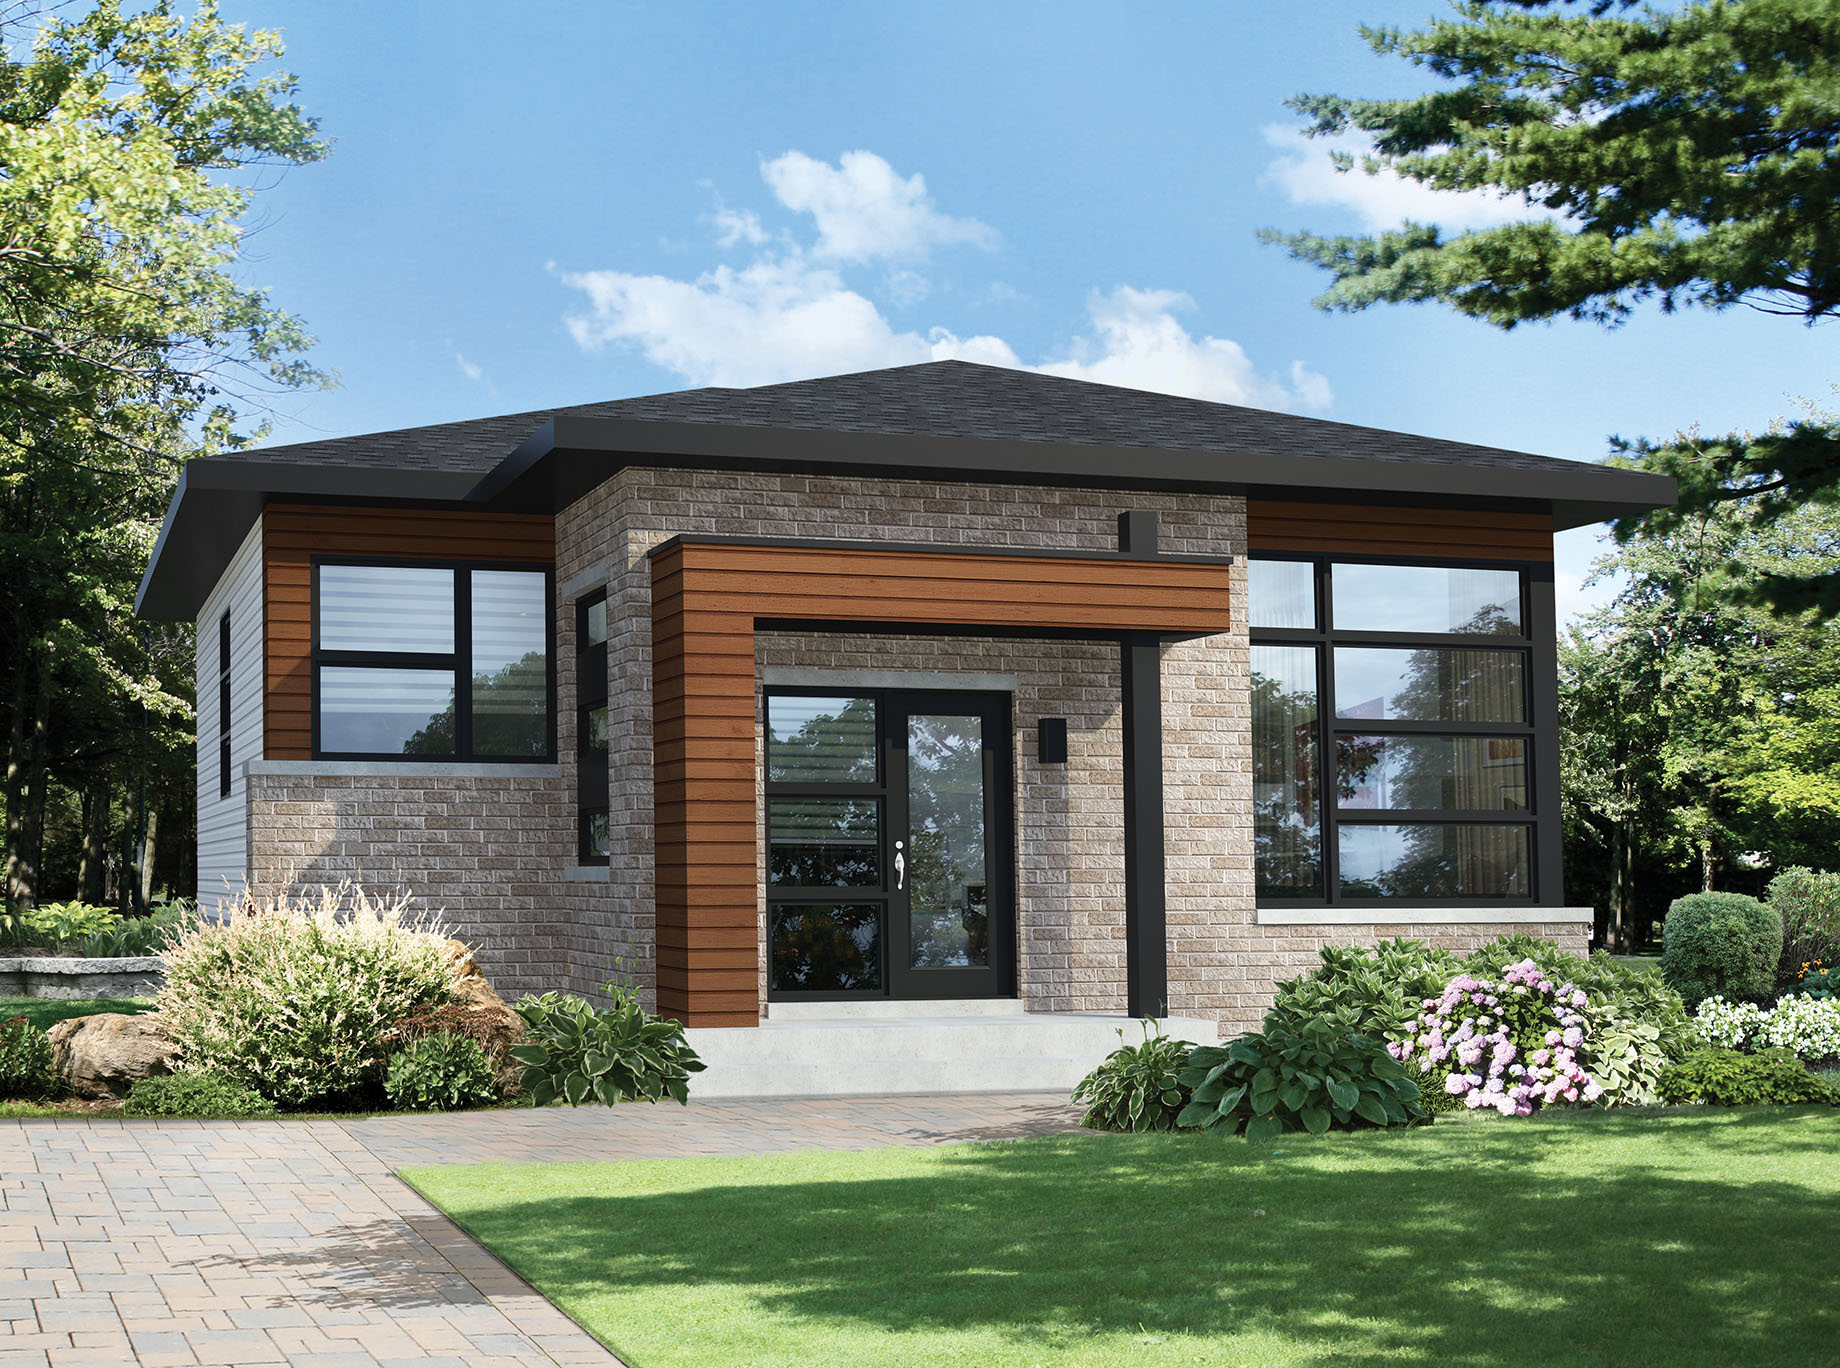 Two Bedroom Modern House Plan - 80792PM